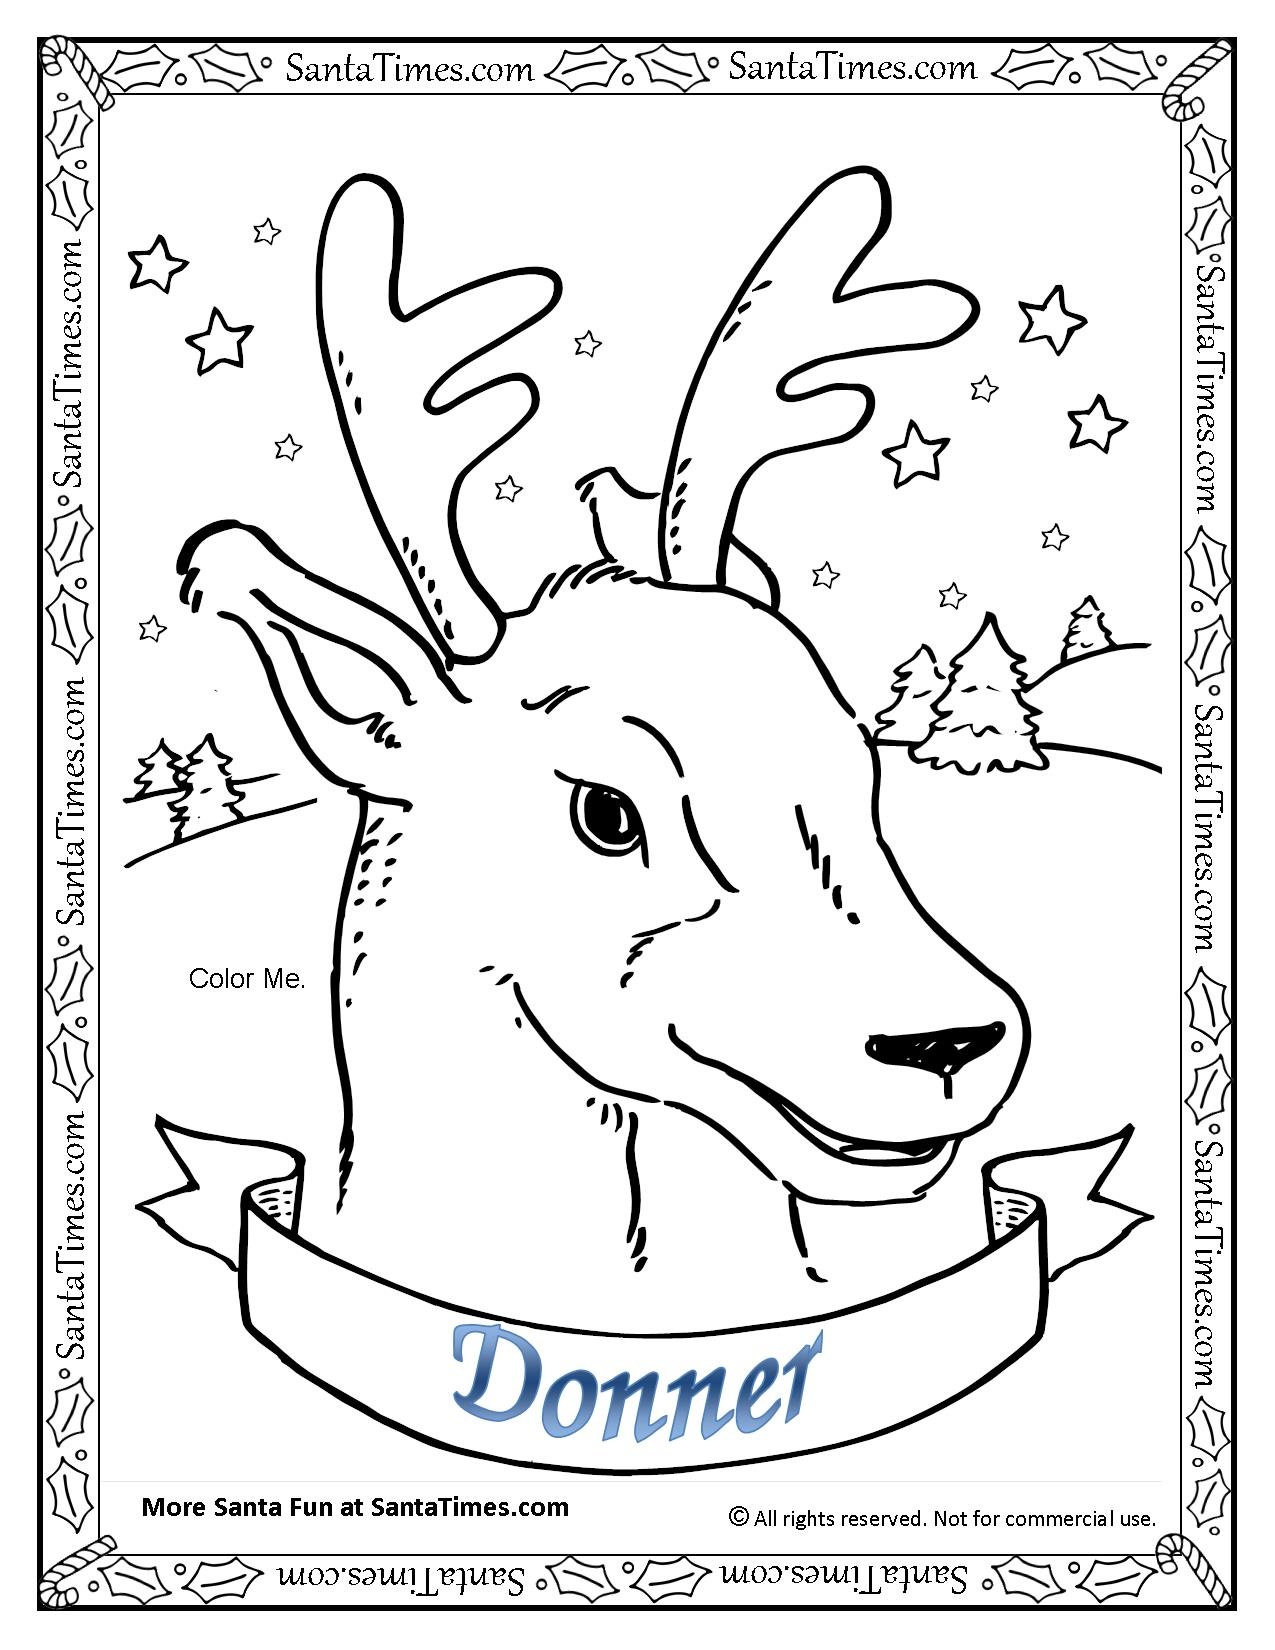 Printable coloring pages reindeer - Donner The Reindeer Printable Coloring Page